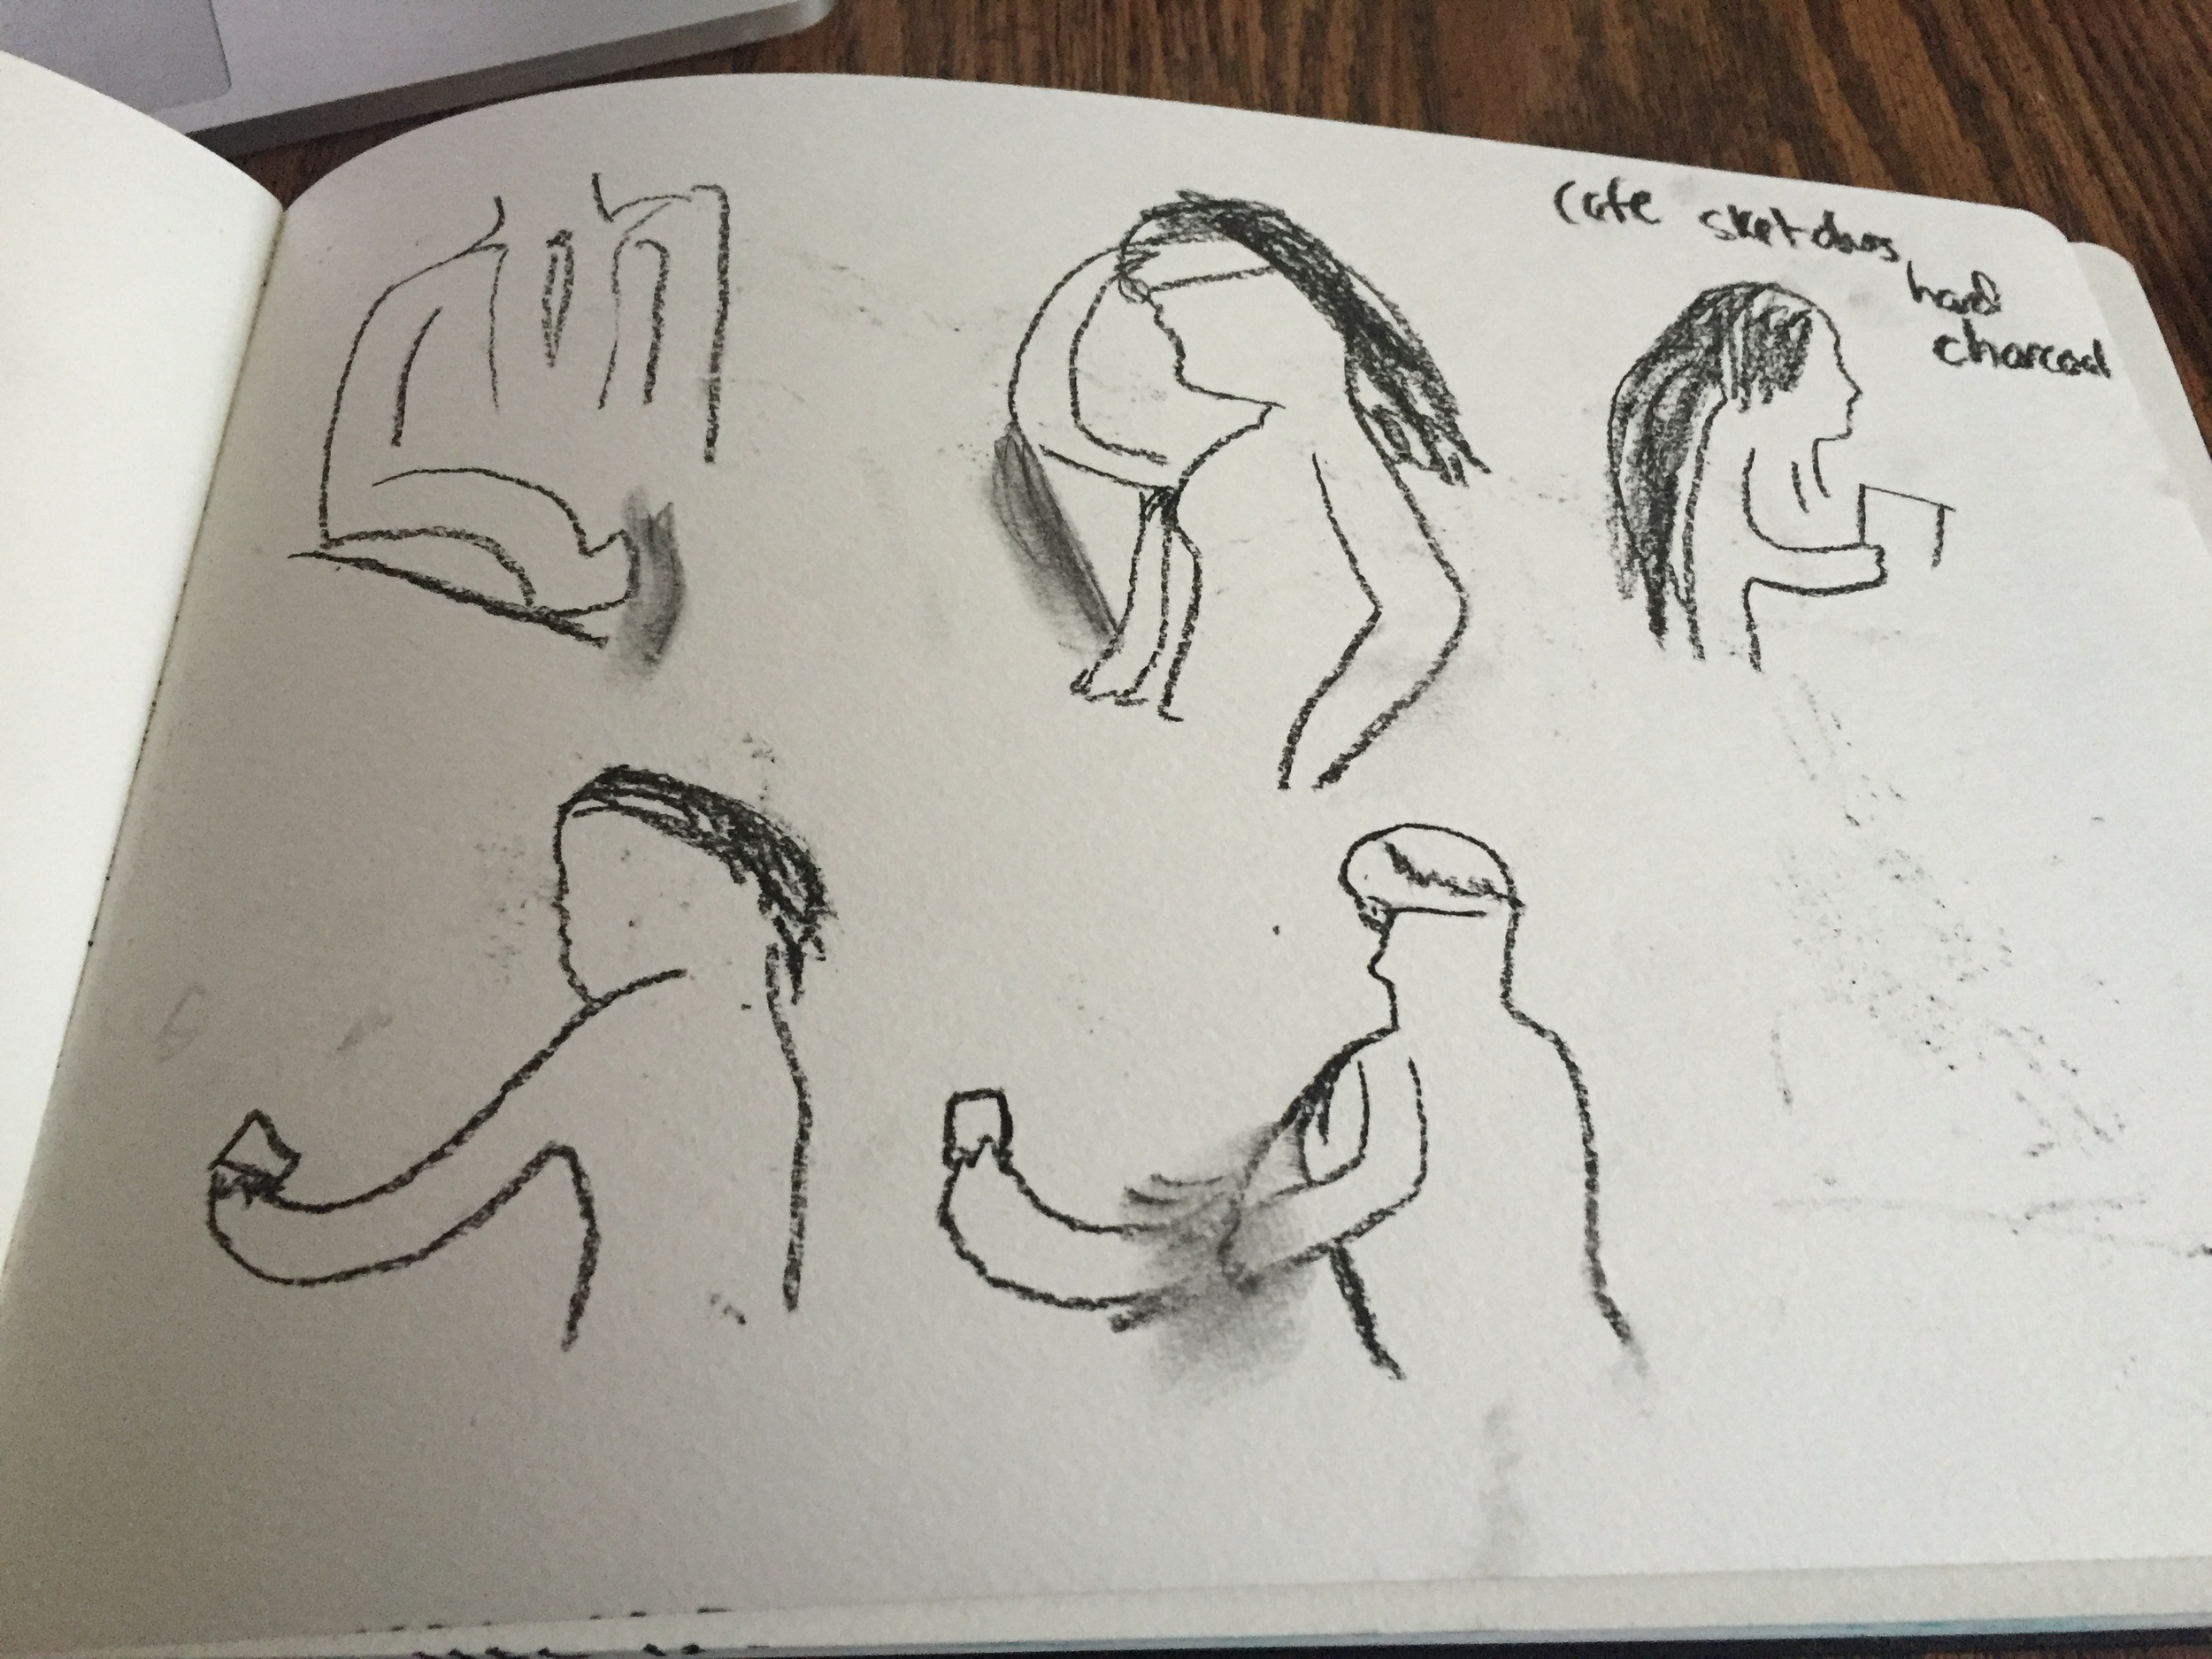 Charcoal movement sketches as part of a SBS assignment. The idea was to catch people doing things, or in poses. So it was mostly line drawings, but I'm glad with what I caught here. The goal wasn't to be realistic.